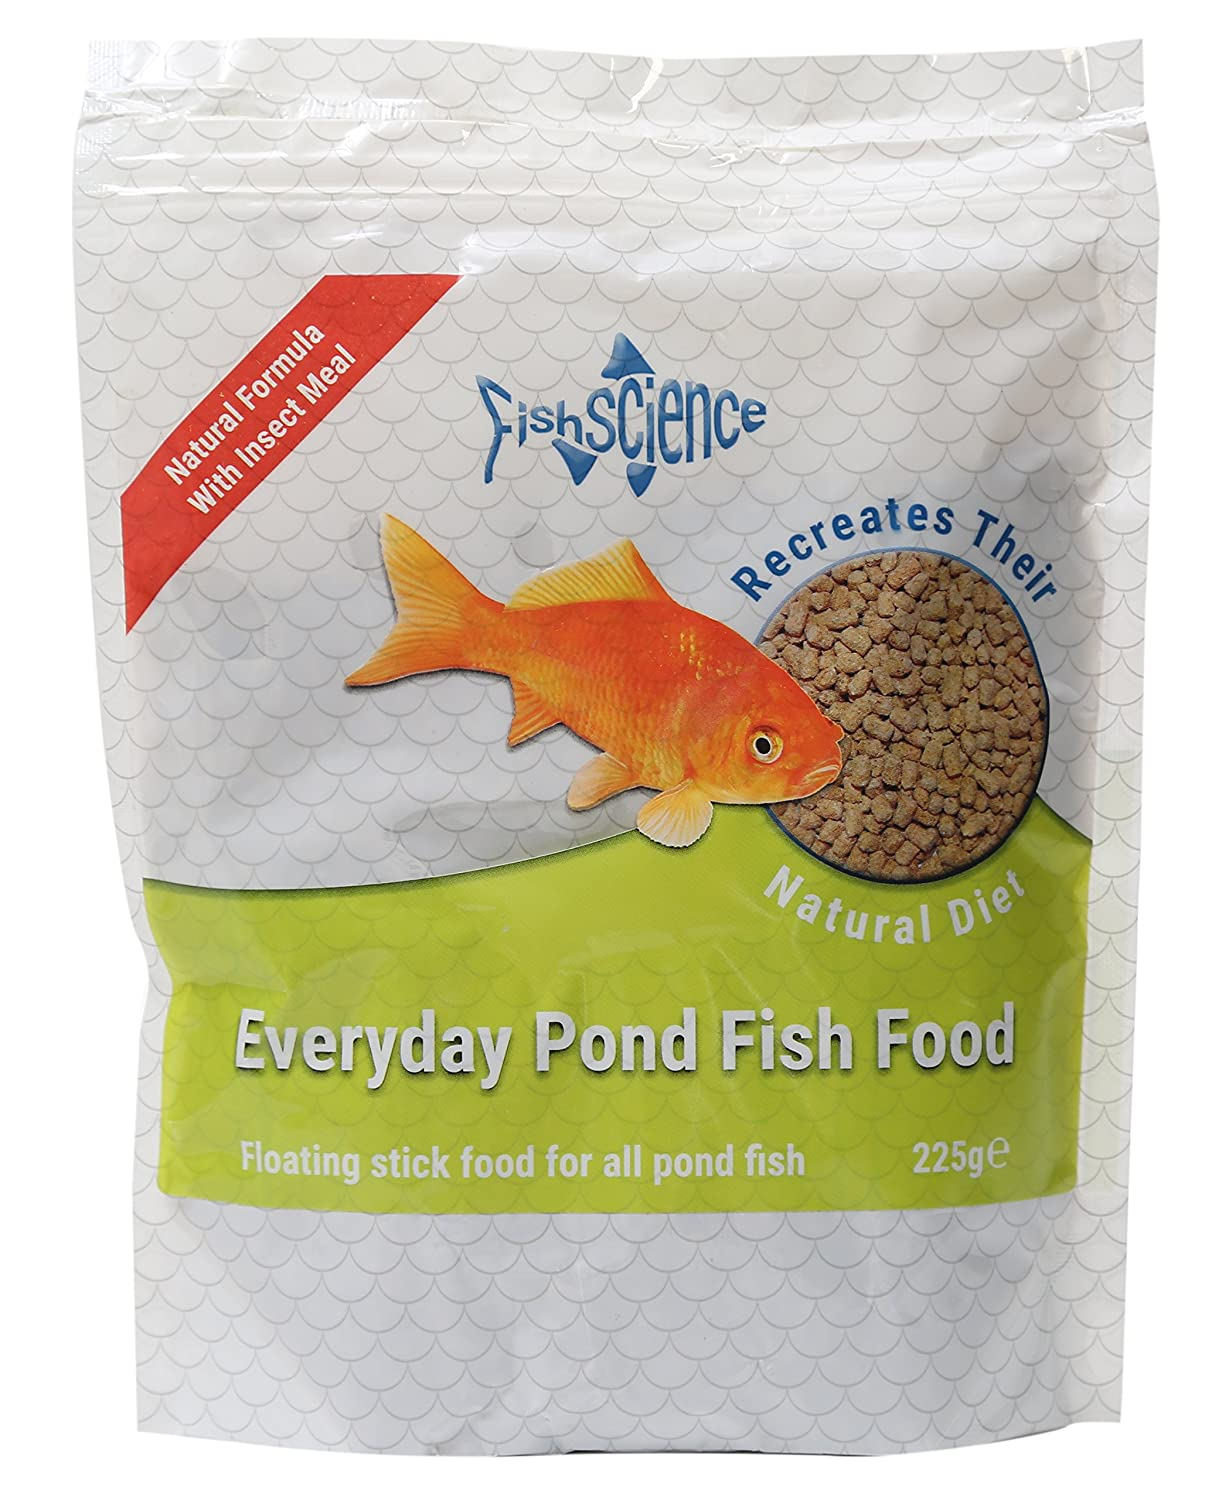 Buy Fishscience Everyday Pond Fish Food 225g Online at Low